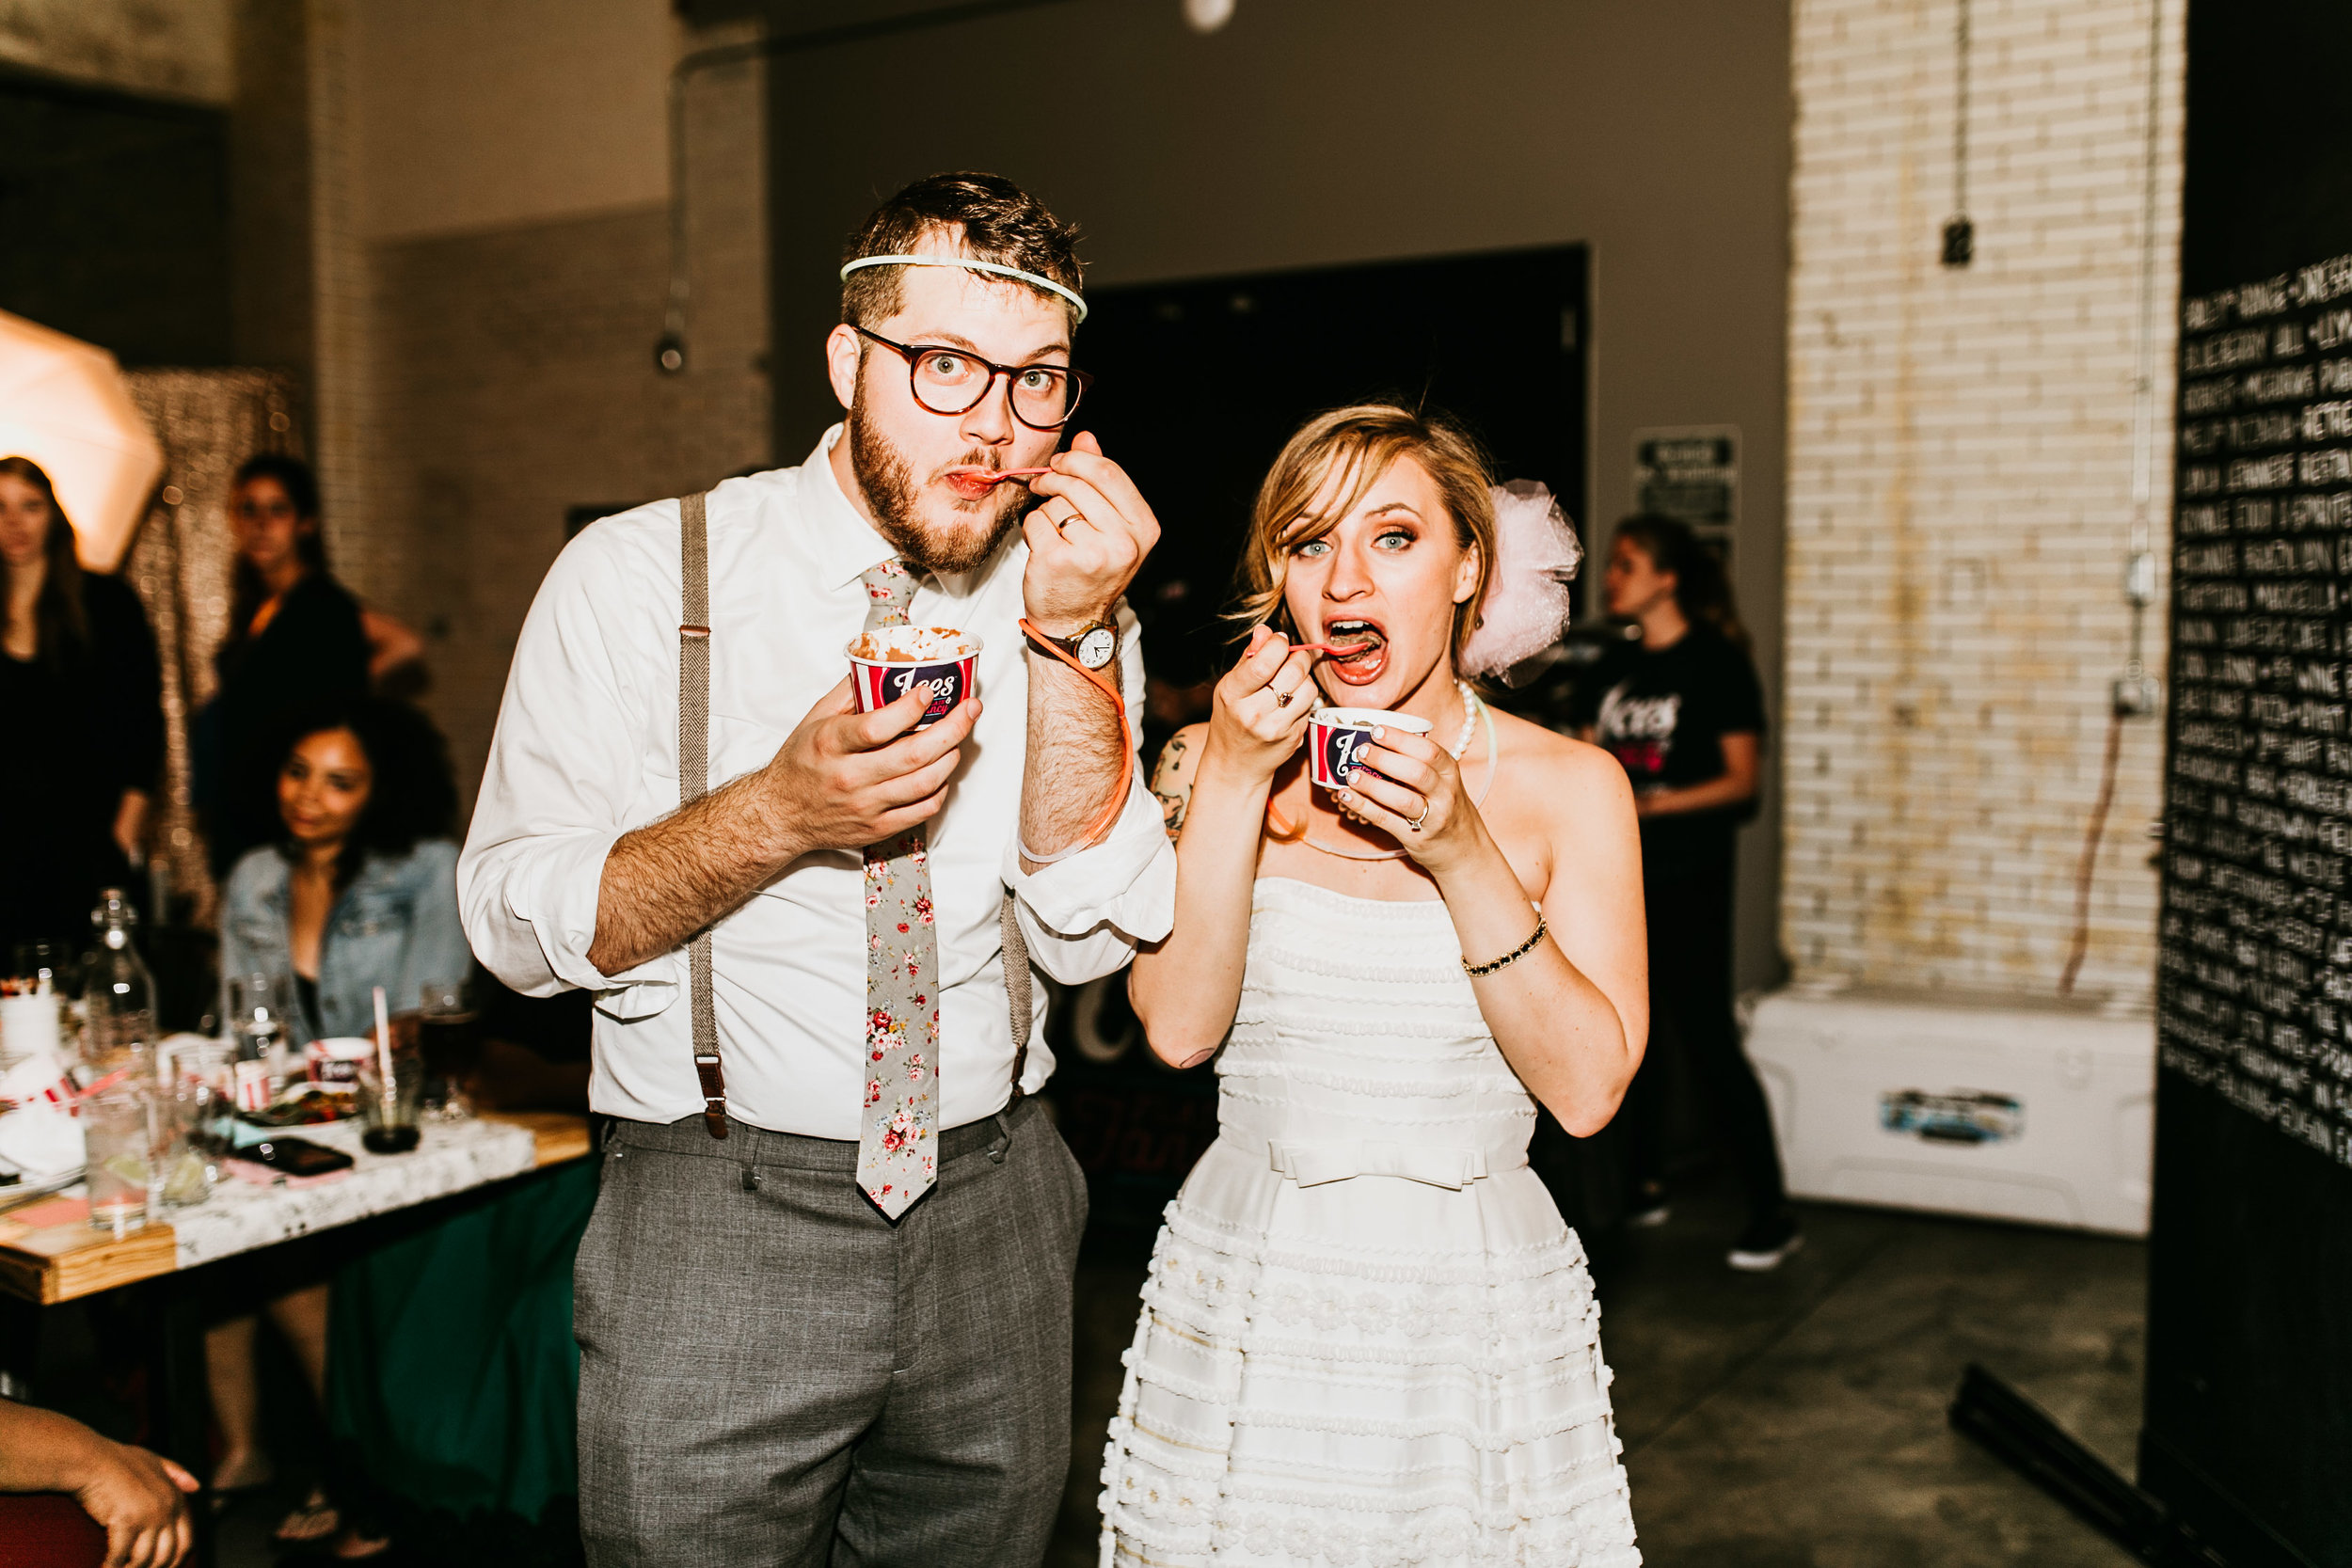 uprooted-traveler-how-to-have-a-vegan-wedding-ice-cream.jpg